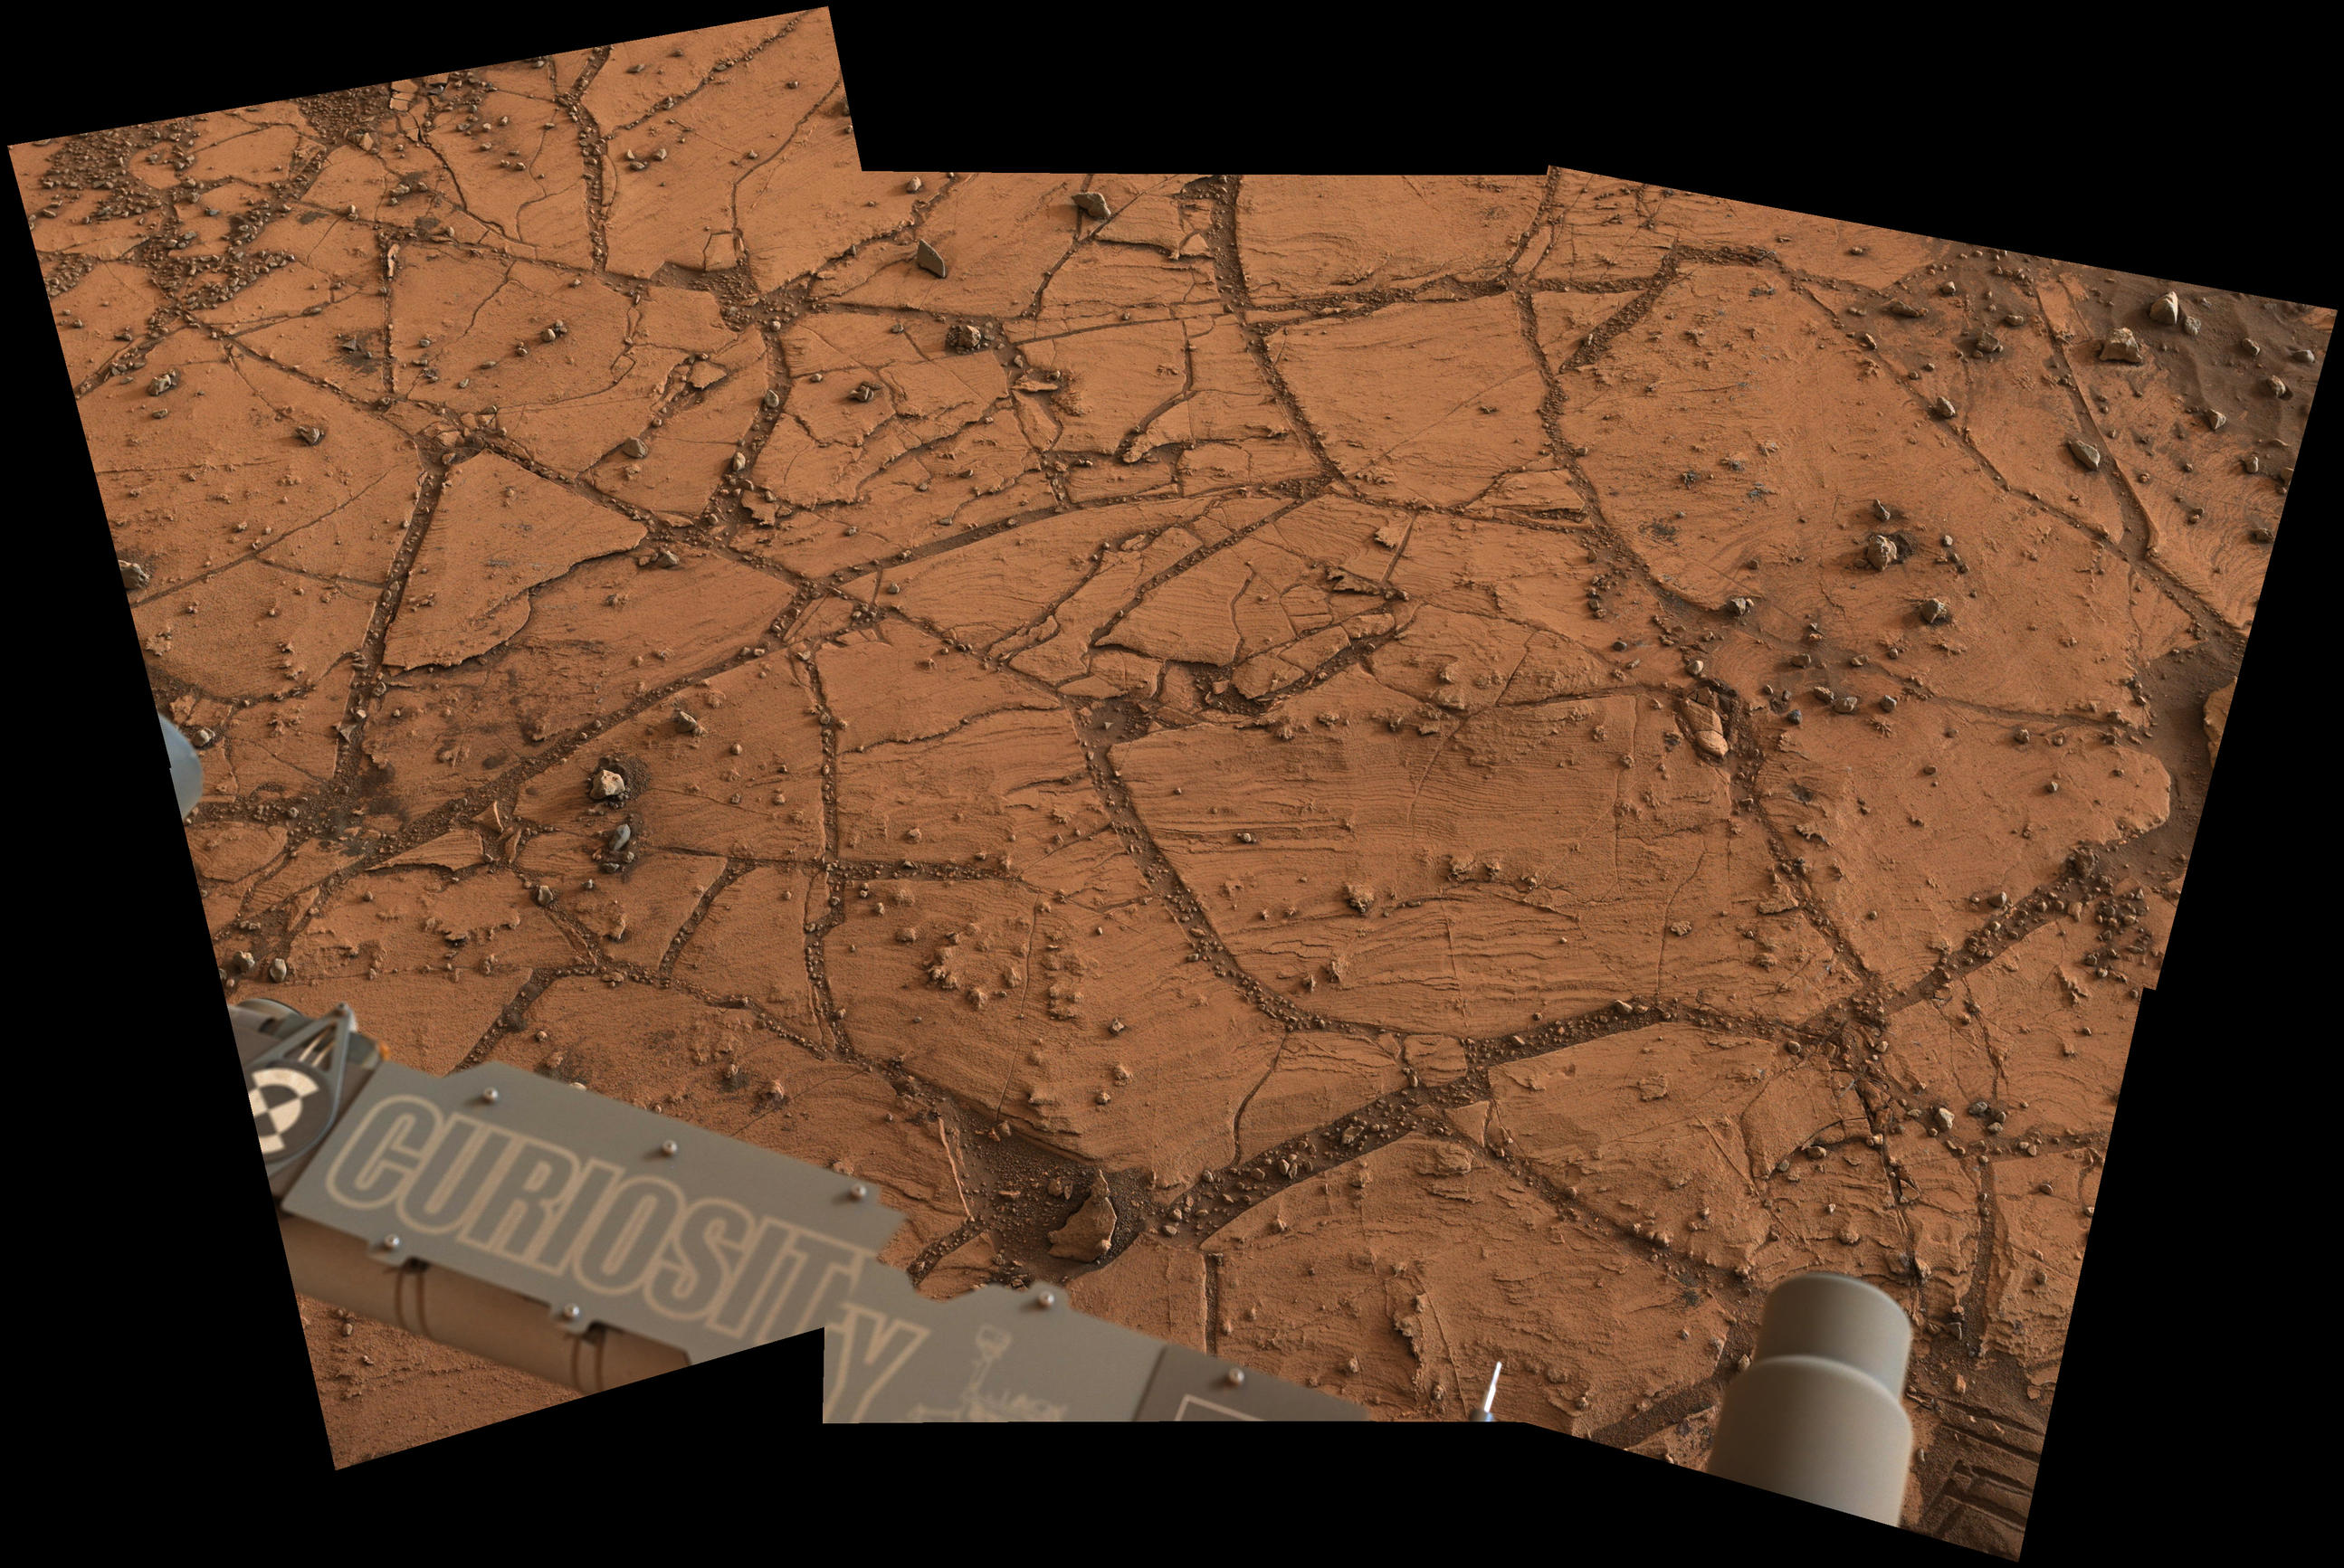 Fine-Grained Rock at Base of Martian Mount Sharp